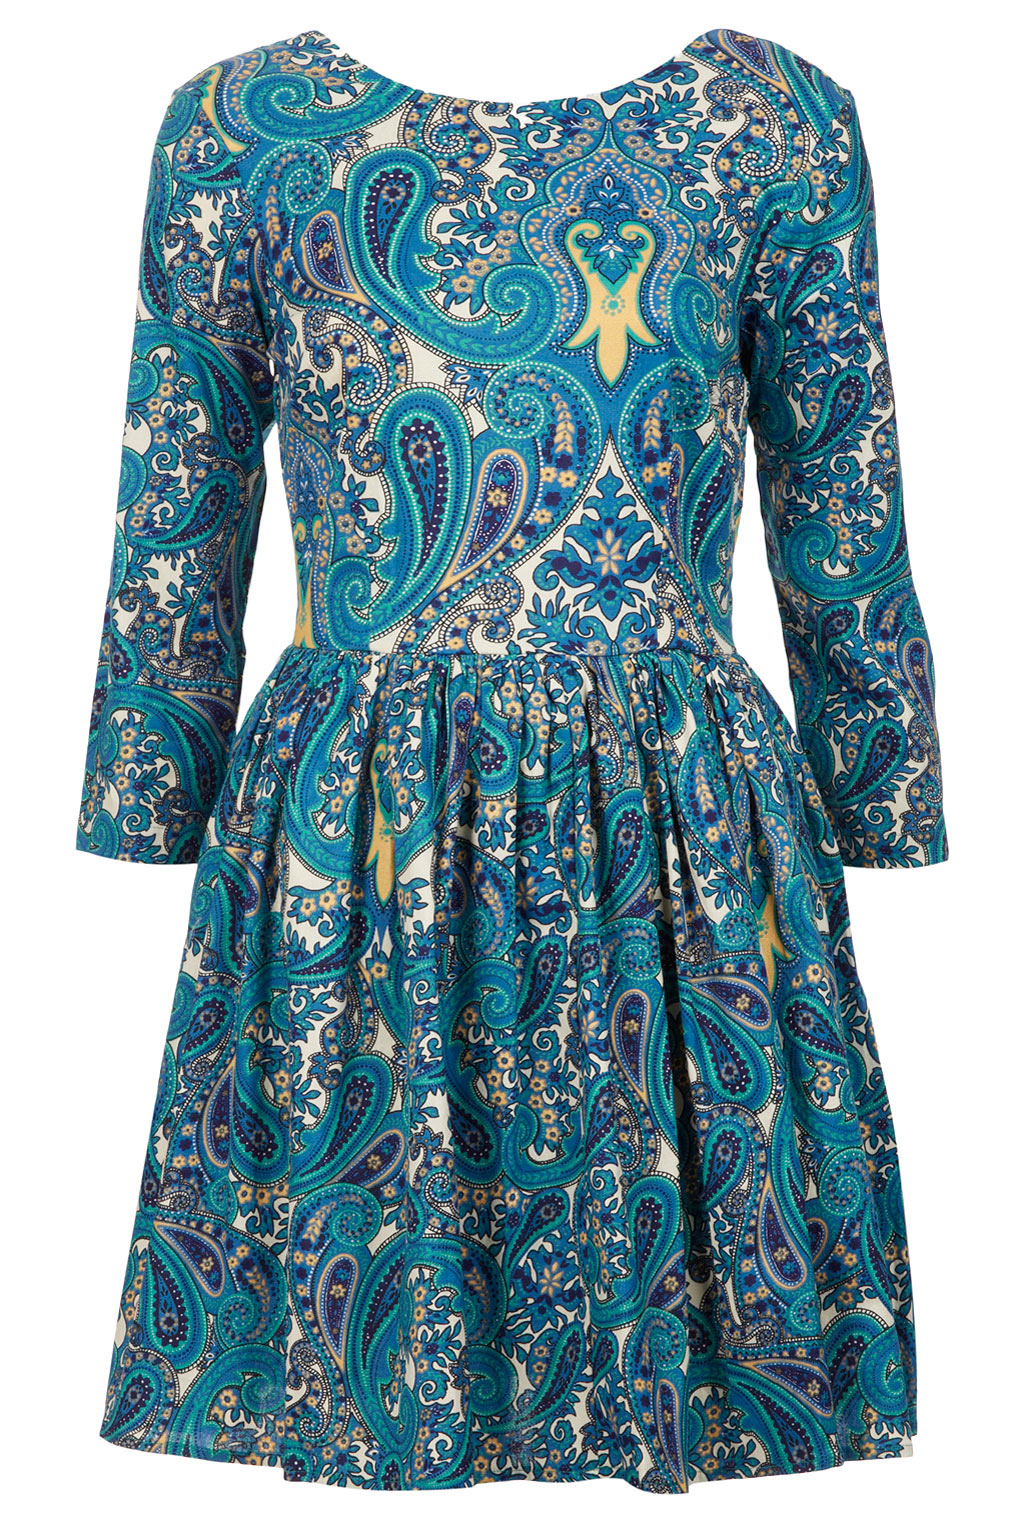 Lyst Topshop Paisley Print Skater Dress In Blue